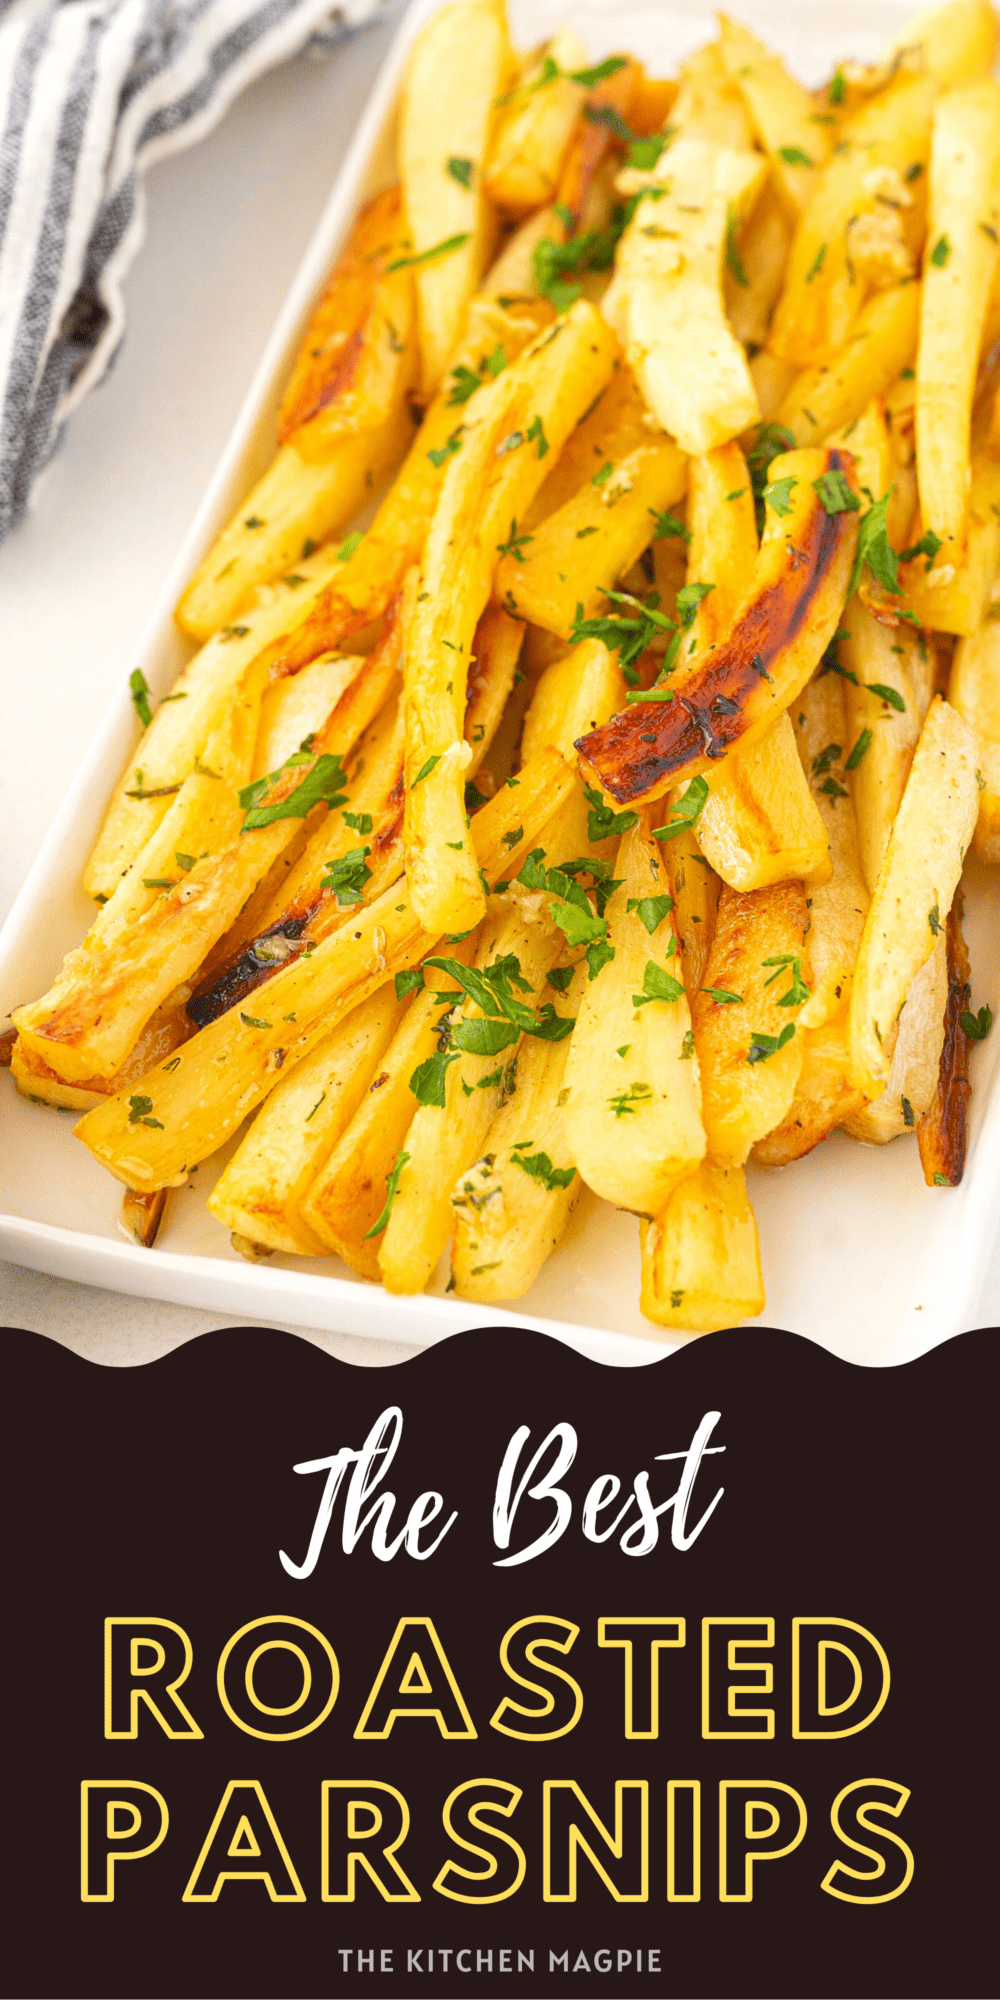 Delicious roasted parsnips with a decadent herb and garlic butter sauce!